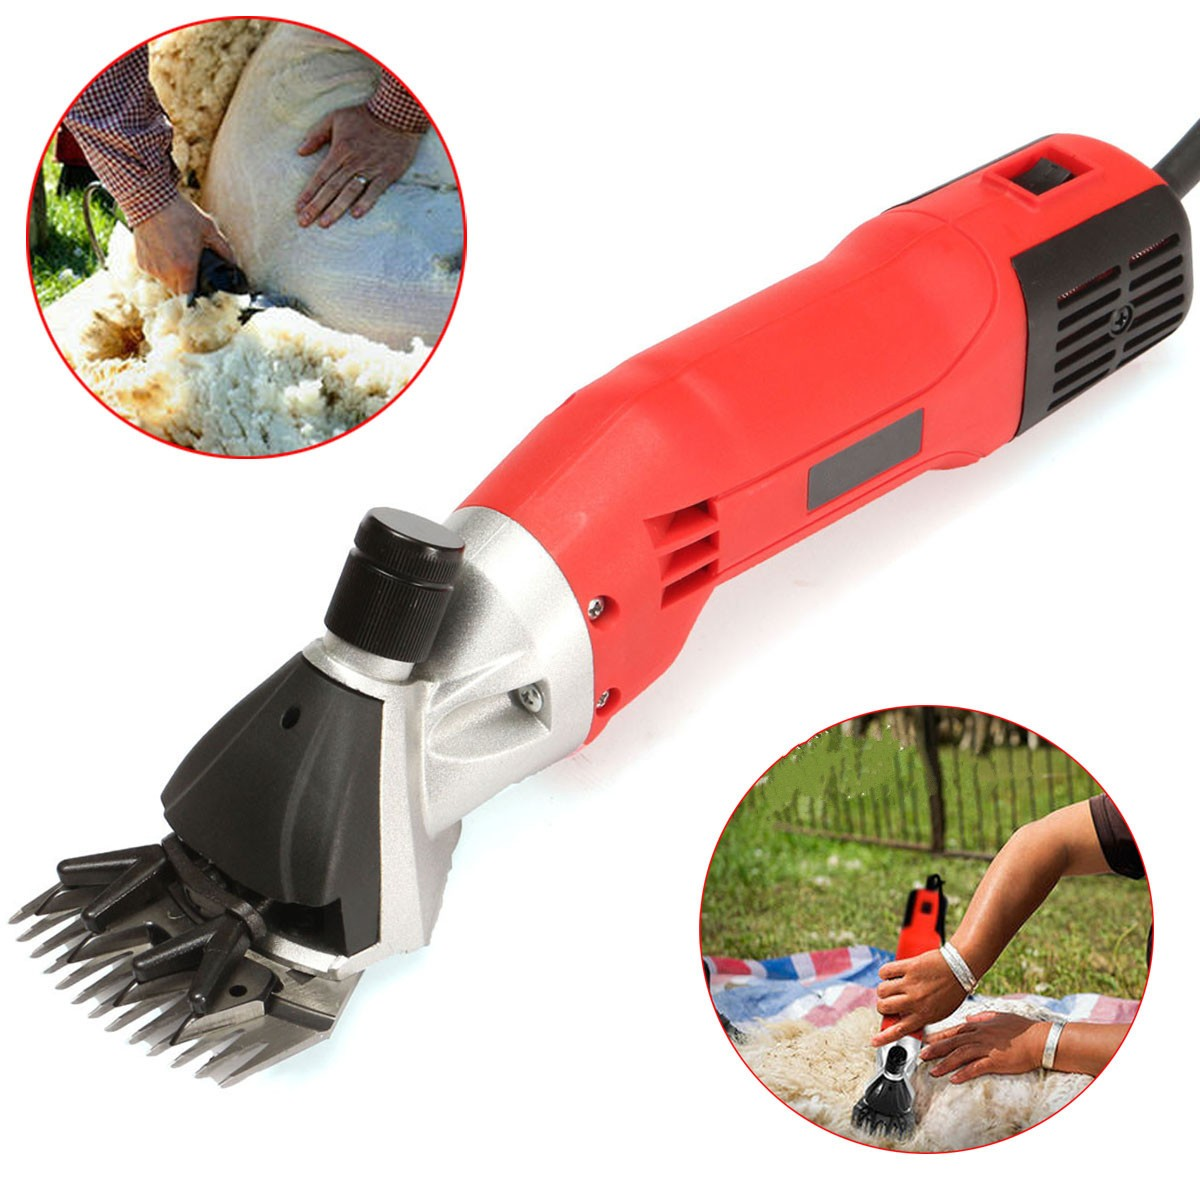 Electric Sheep Goats Shearing Clipper Shear Alpaca Farm Shears Tool Aluminum Power Scissors 500W 220V AC usb charged 10 models super fast retractable fully automatic masturbator male masturbation machine sex products